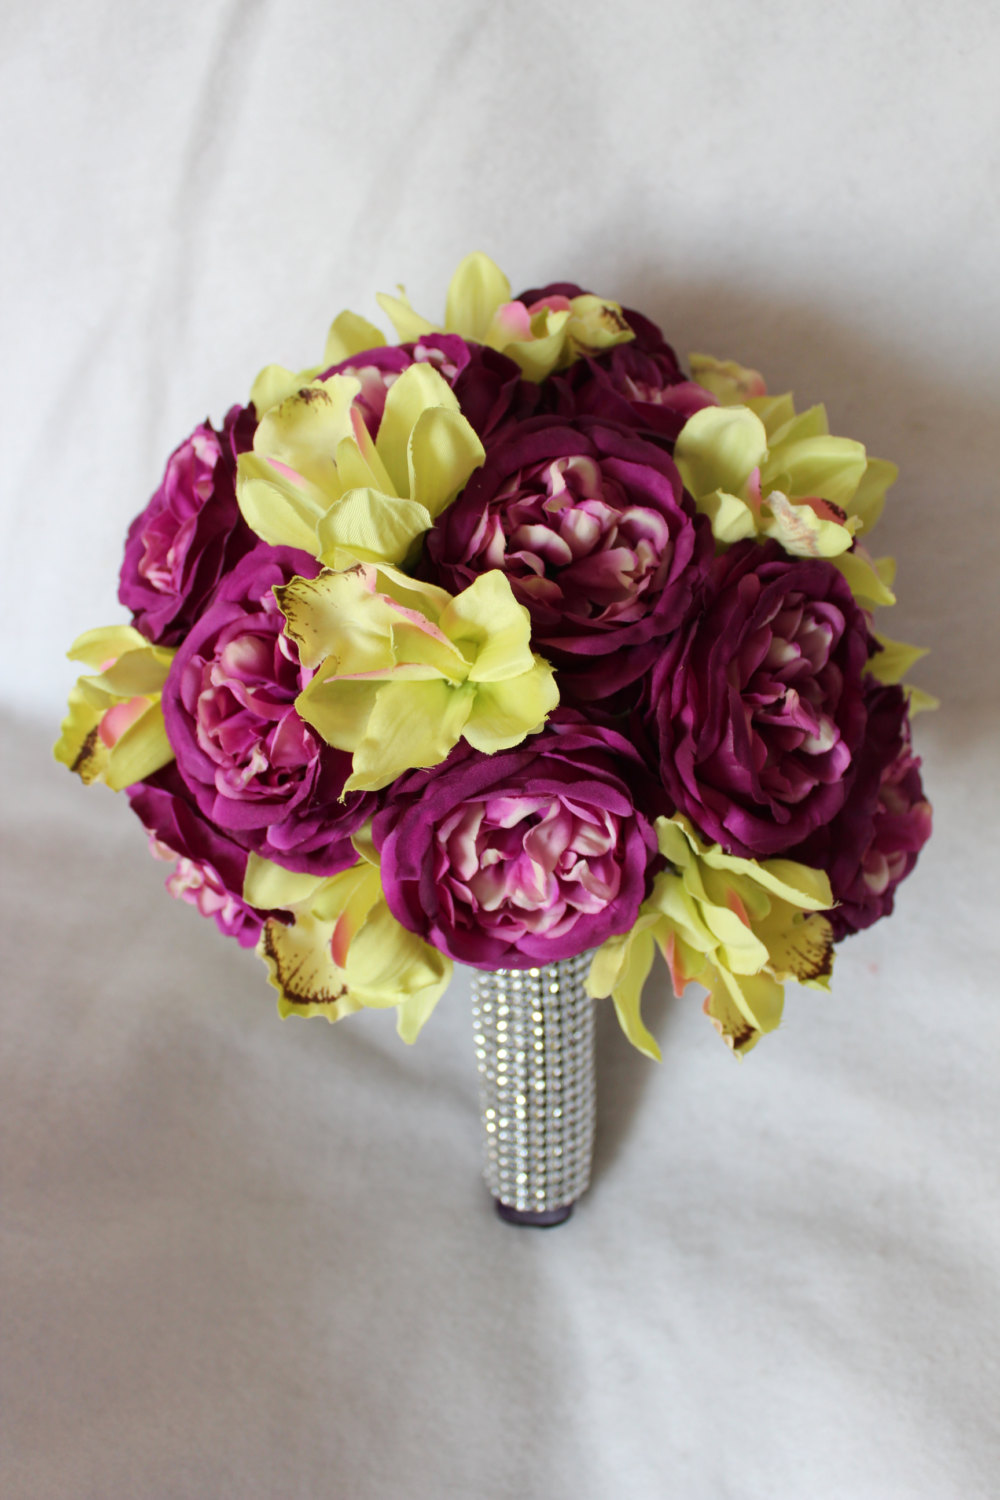 minneapolis-silk-florist-English-Rose-&-Cymbidium-Orchid-Silk-Wedding-Flower-Bouquet-and-Matching-Boutonniere-in-Violet-and-Lime-Green.jpg